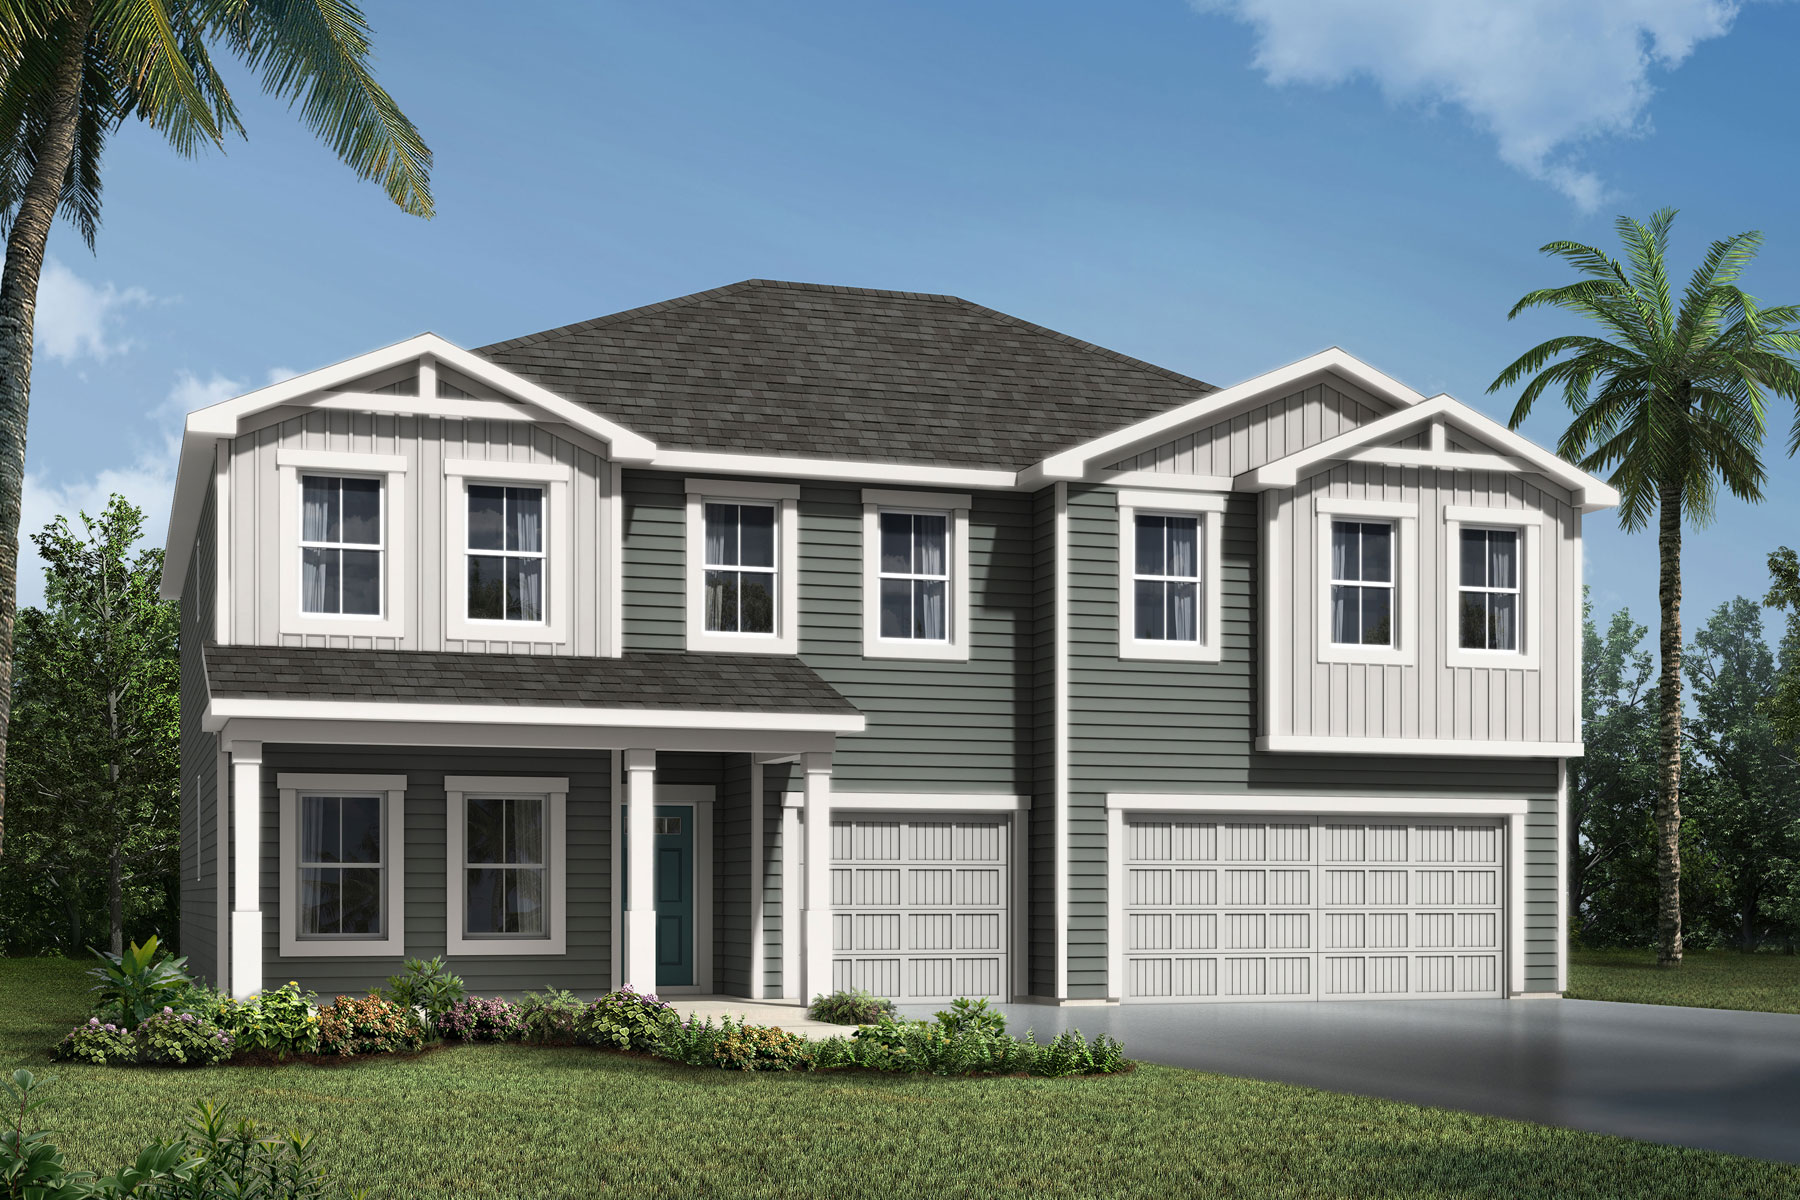 Turner Plan Elevation Front at RiverTown - Haven in St. Johns Florida by Mattamy Homes